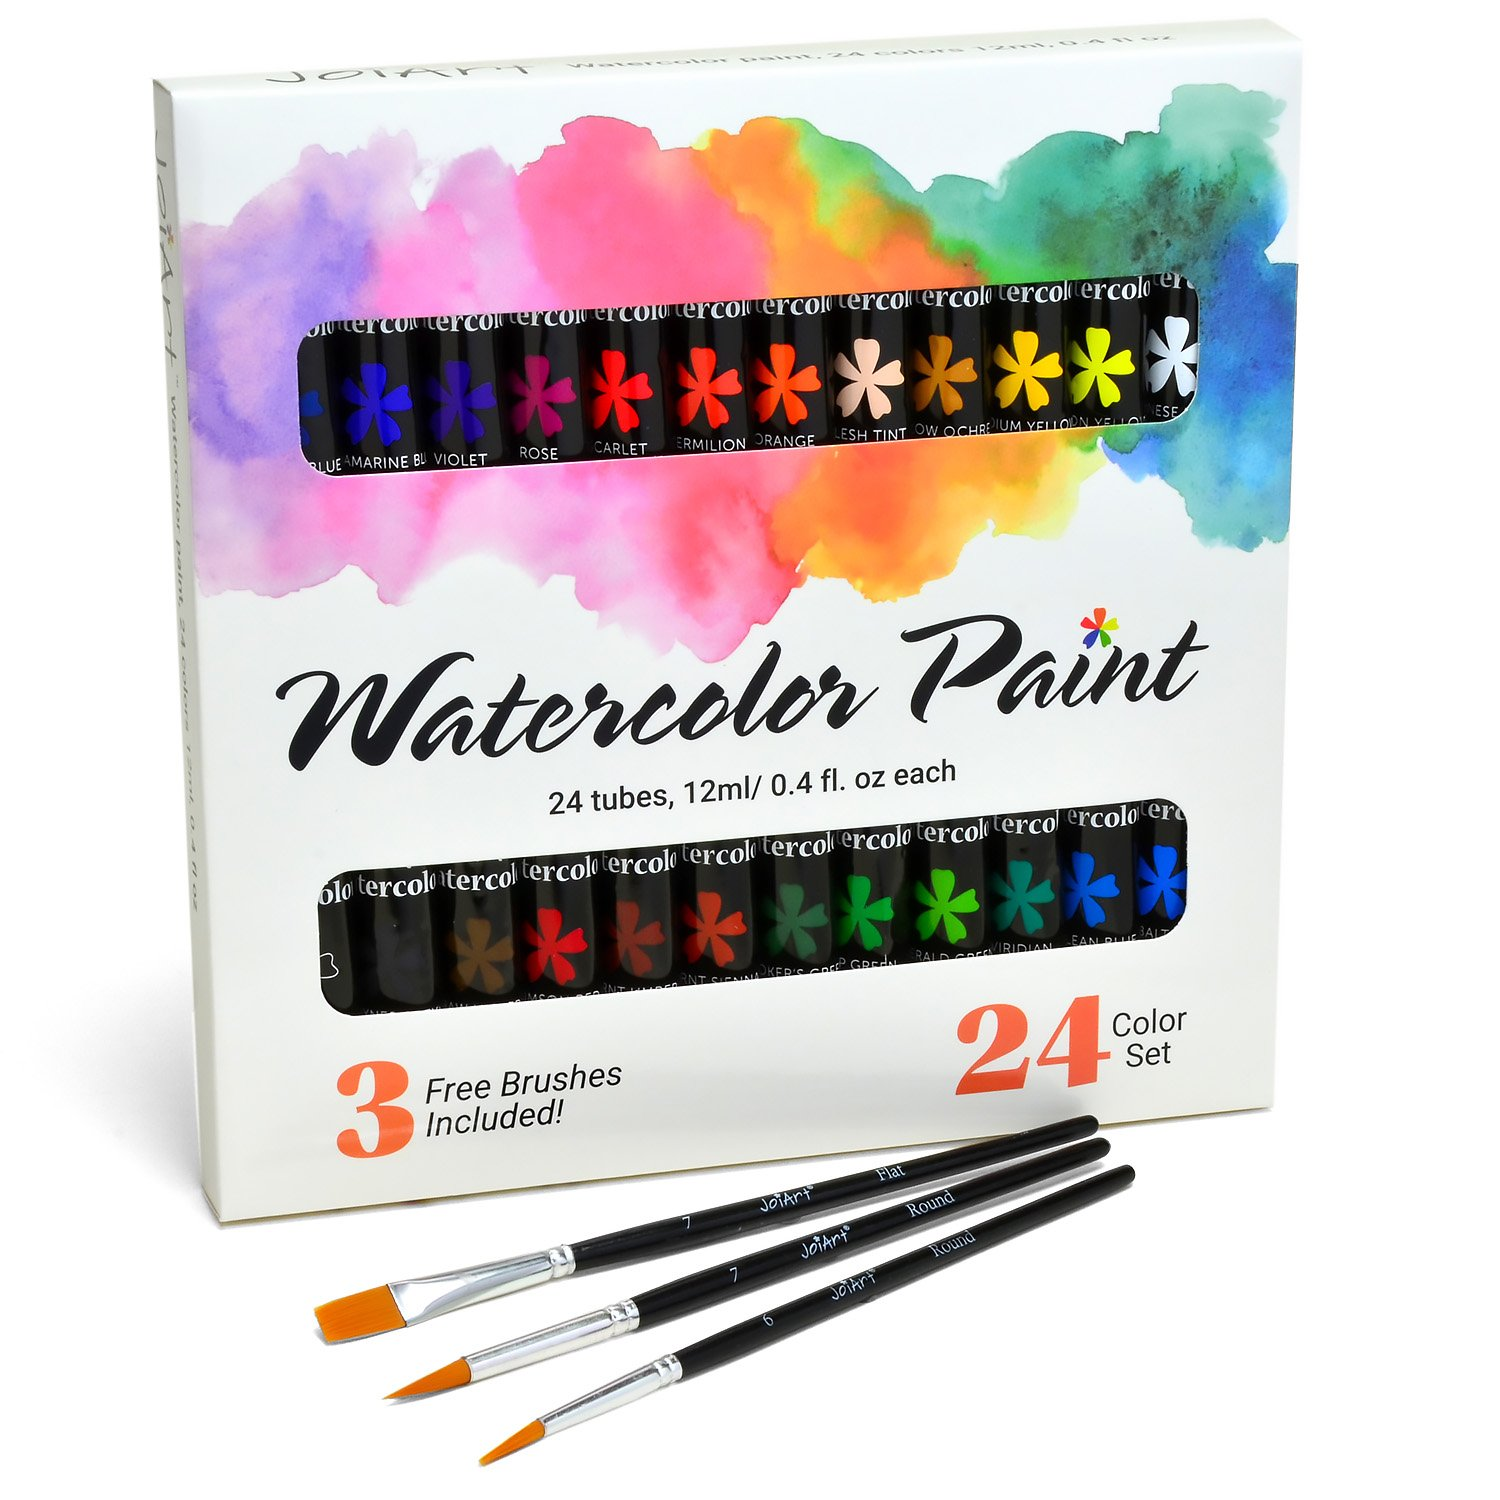 Watercolor Paint Set by JoiArt Bright 24 Color Premium Painting Kit for Beginners, Students and Artists - Includes 3 Brushes